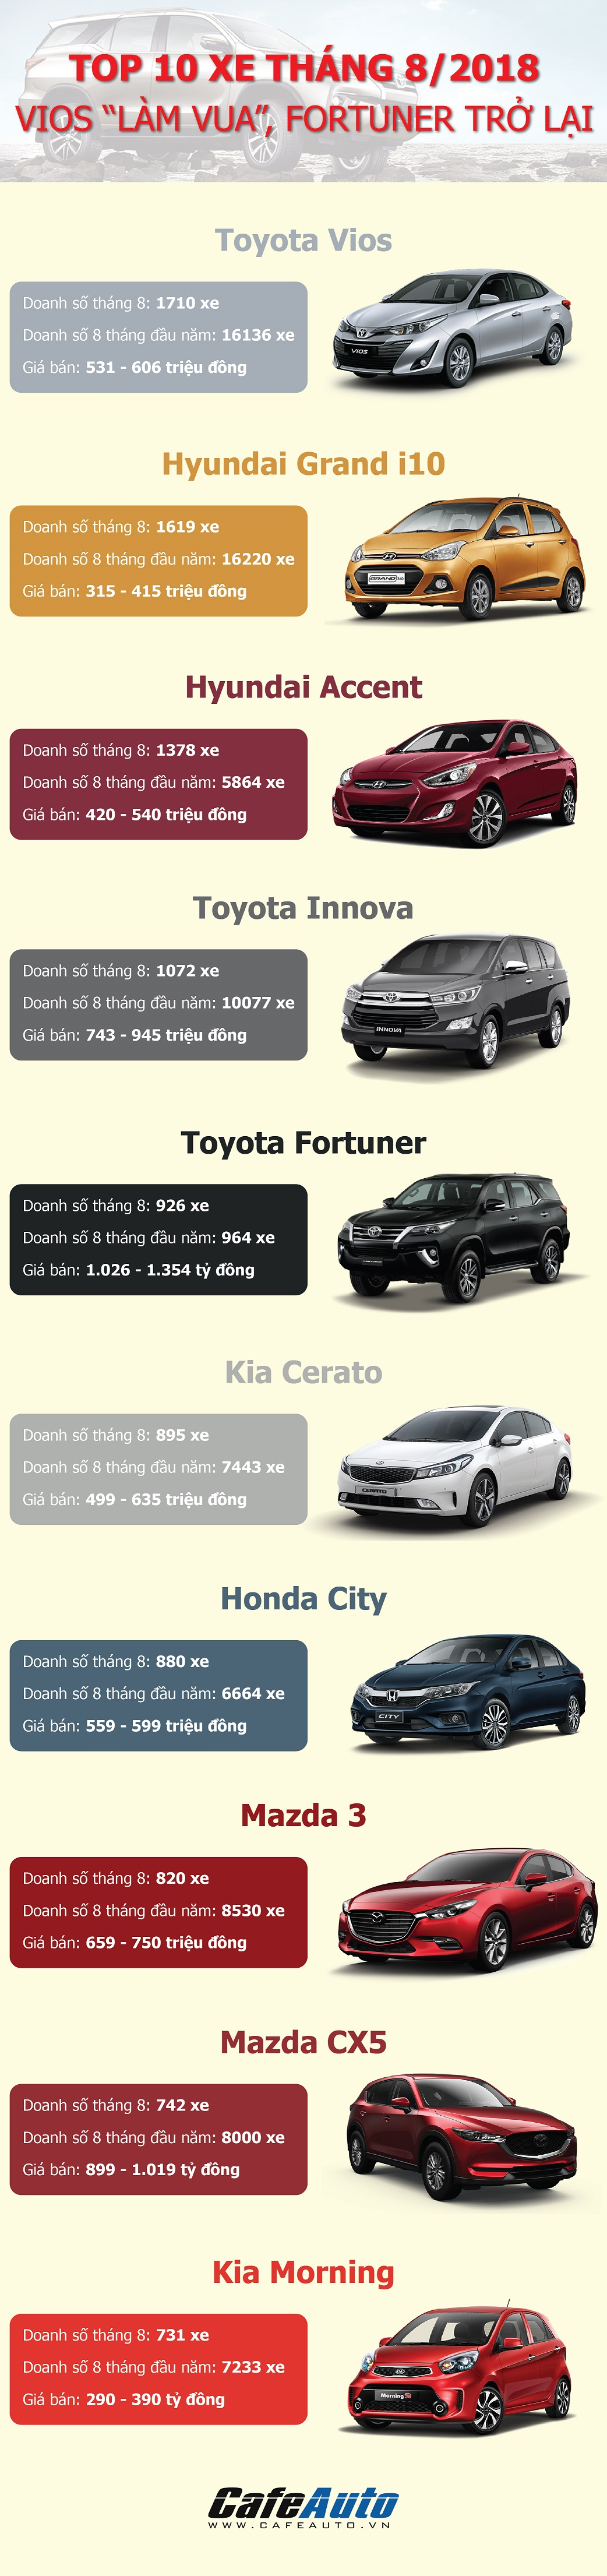 toyota-vios-'lam-vua'-fortuner-tro-lai-top-xe-ban-chay-thang-8-2018